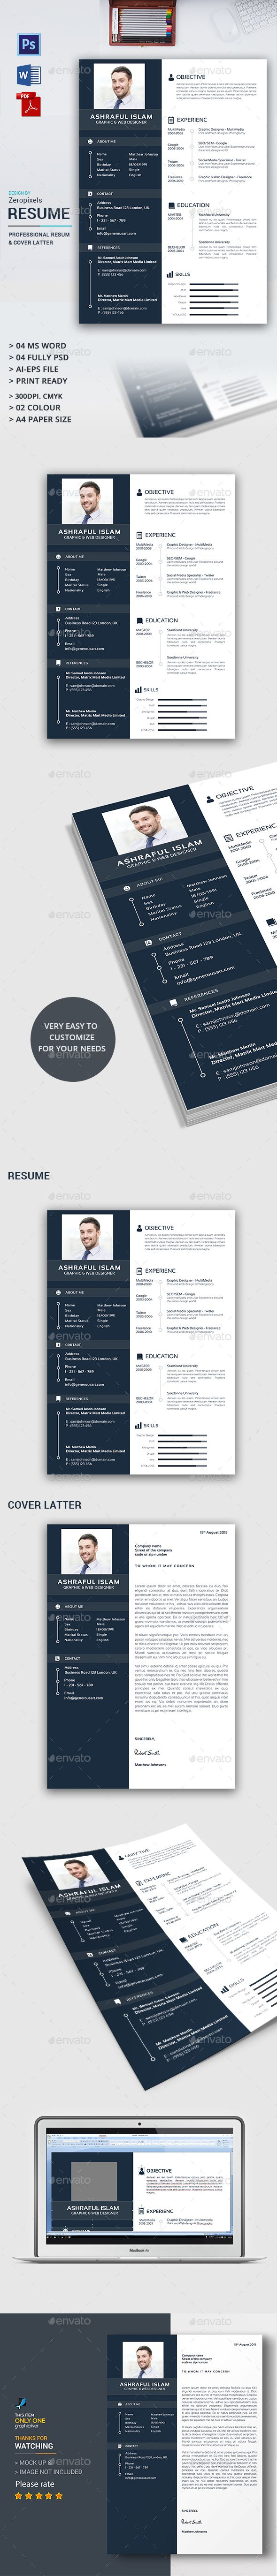 63 best UX doc/CV images on Pinterest | Charts, Info graphics and ...